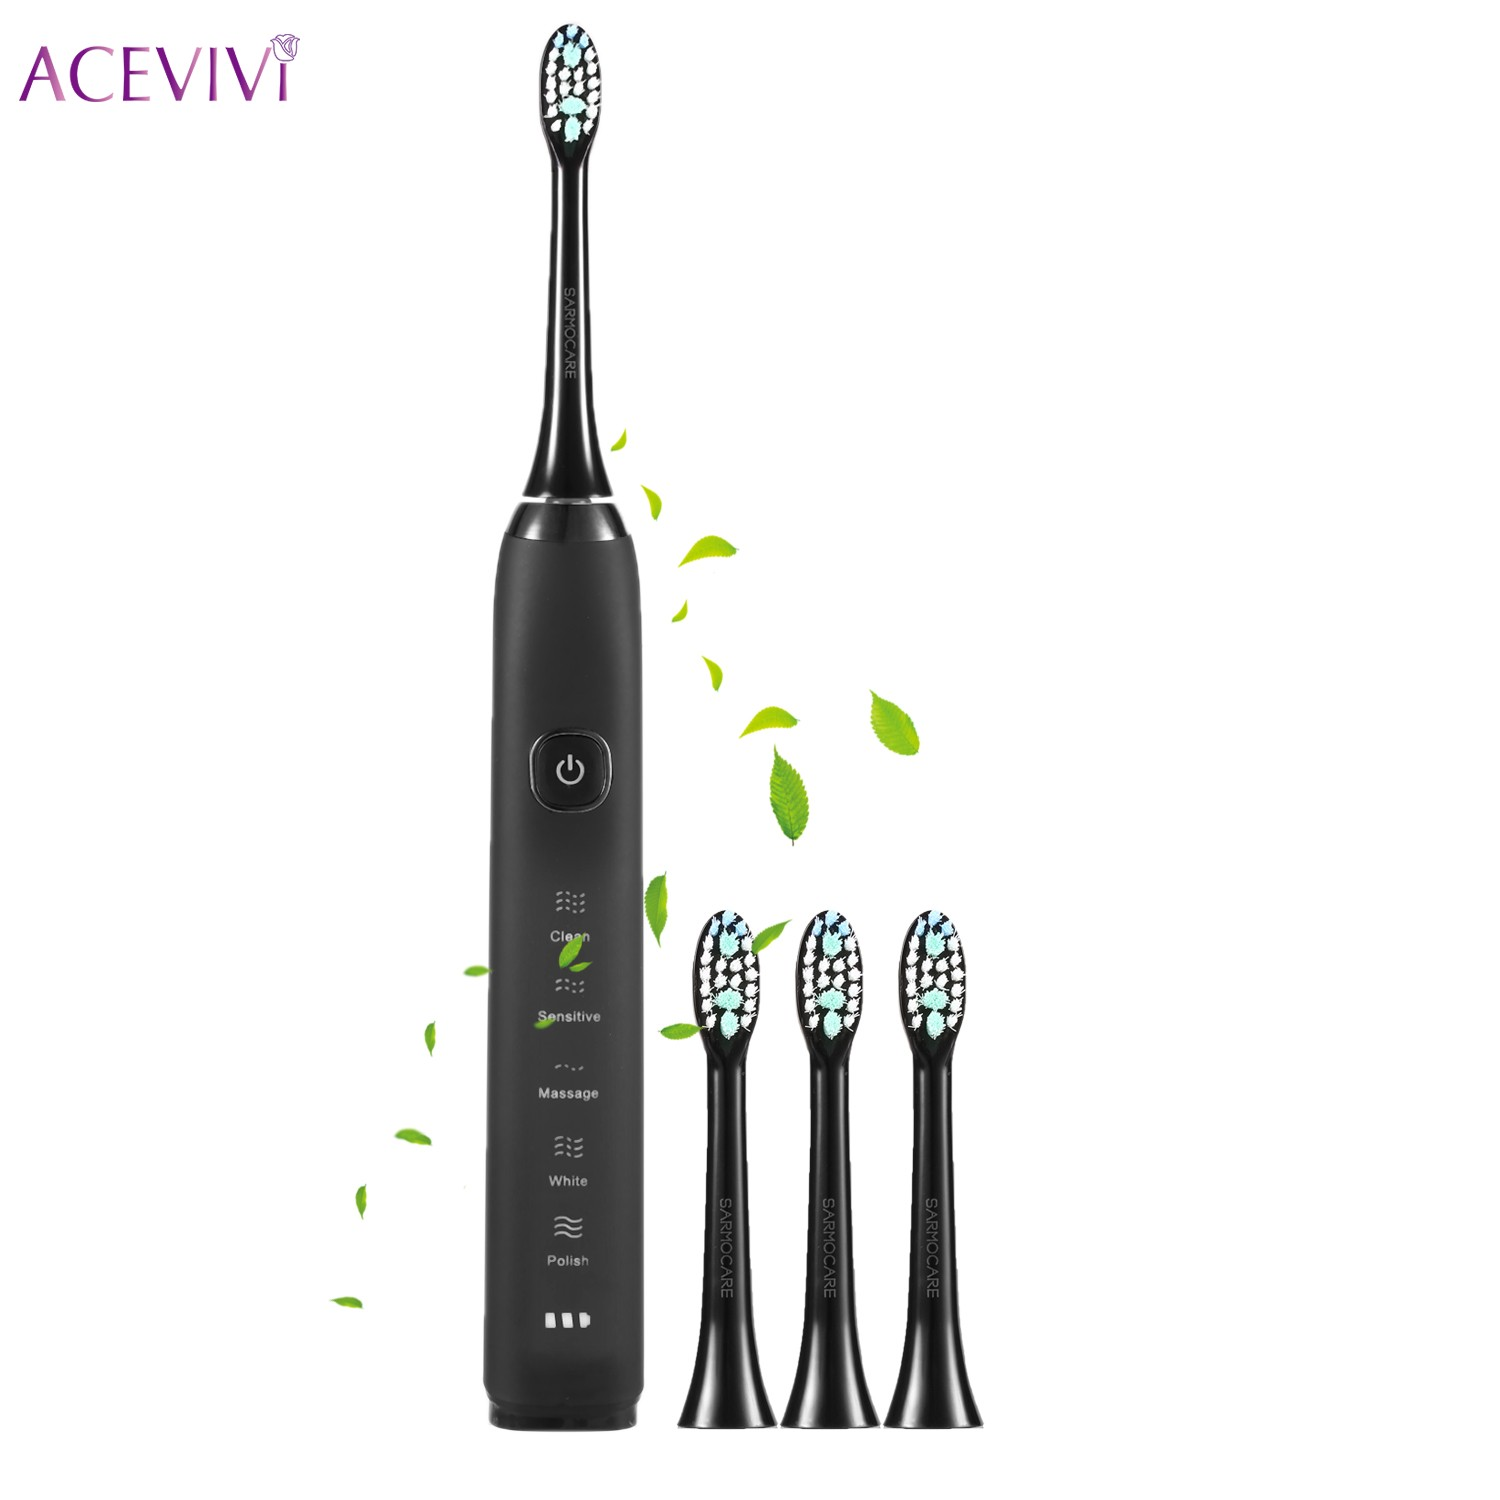 ACEVIVI Ultrasonic Sonic Electric Toothbrush USB Charge Rechargeable Tooth Brushes With 3 Heads Timer Brush Oral Hygiene Health